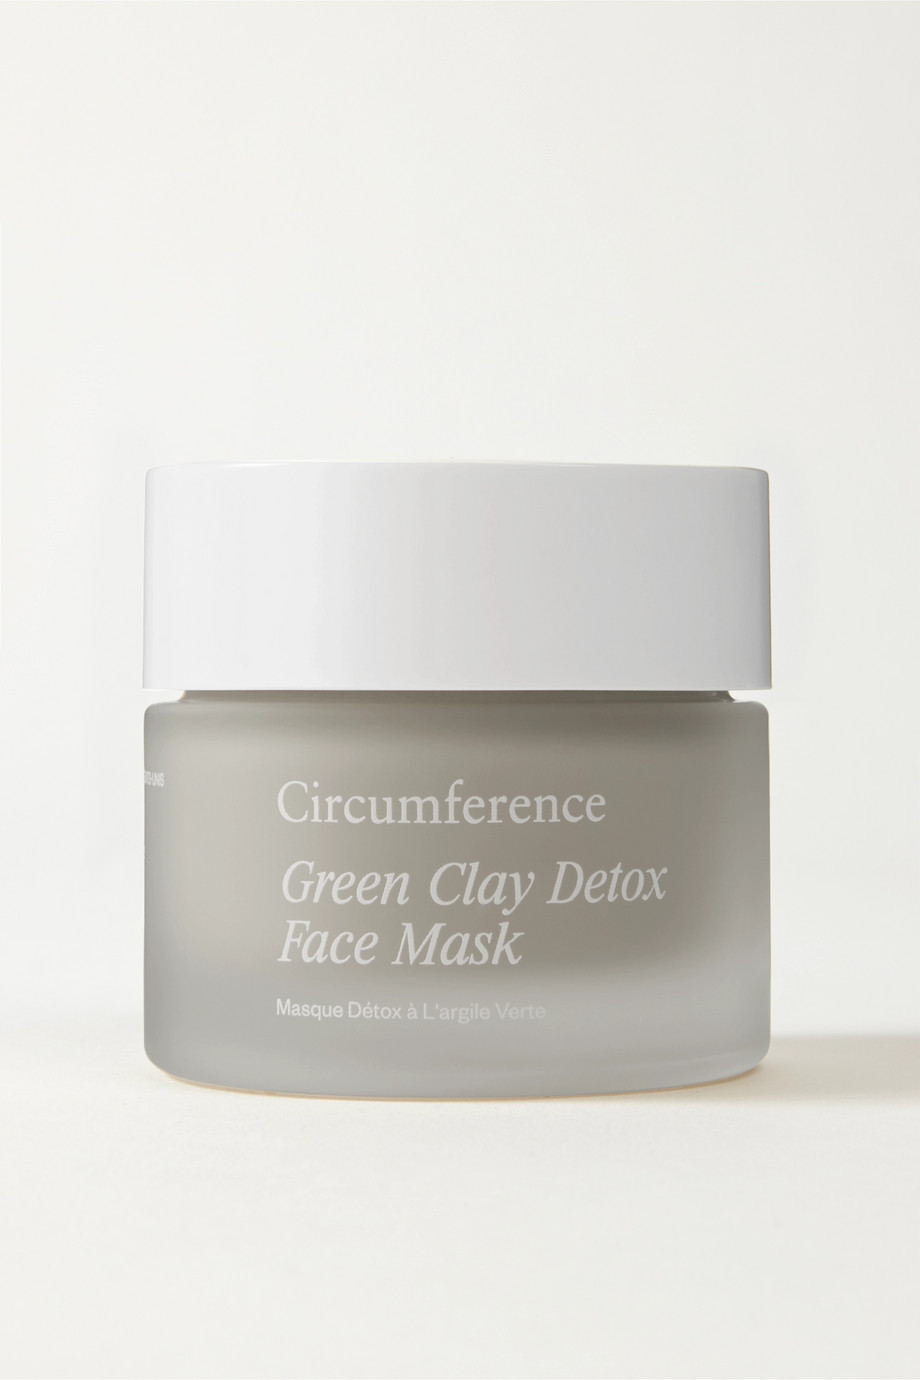 Circumference Green Clay Detox Face Mask, 50 ml – Gesichtsmaske